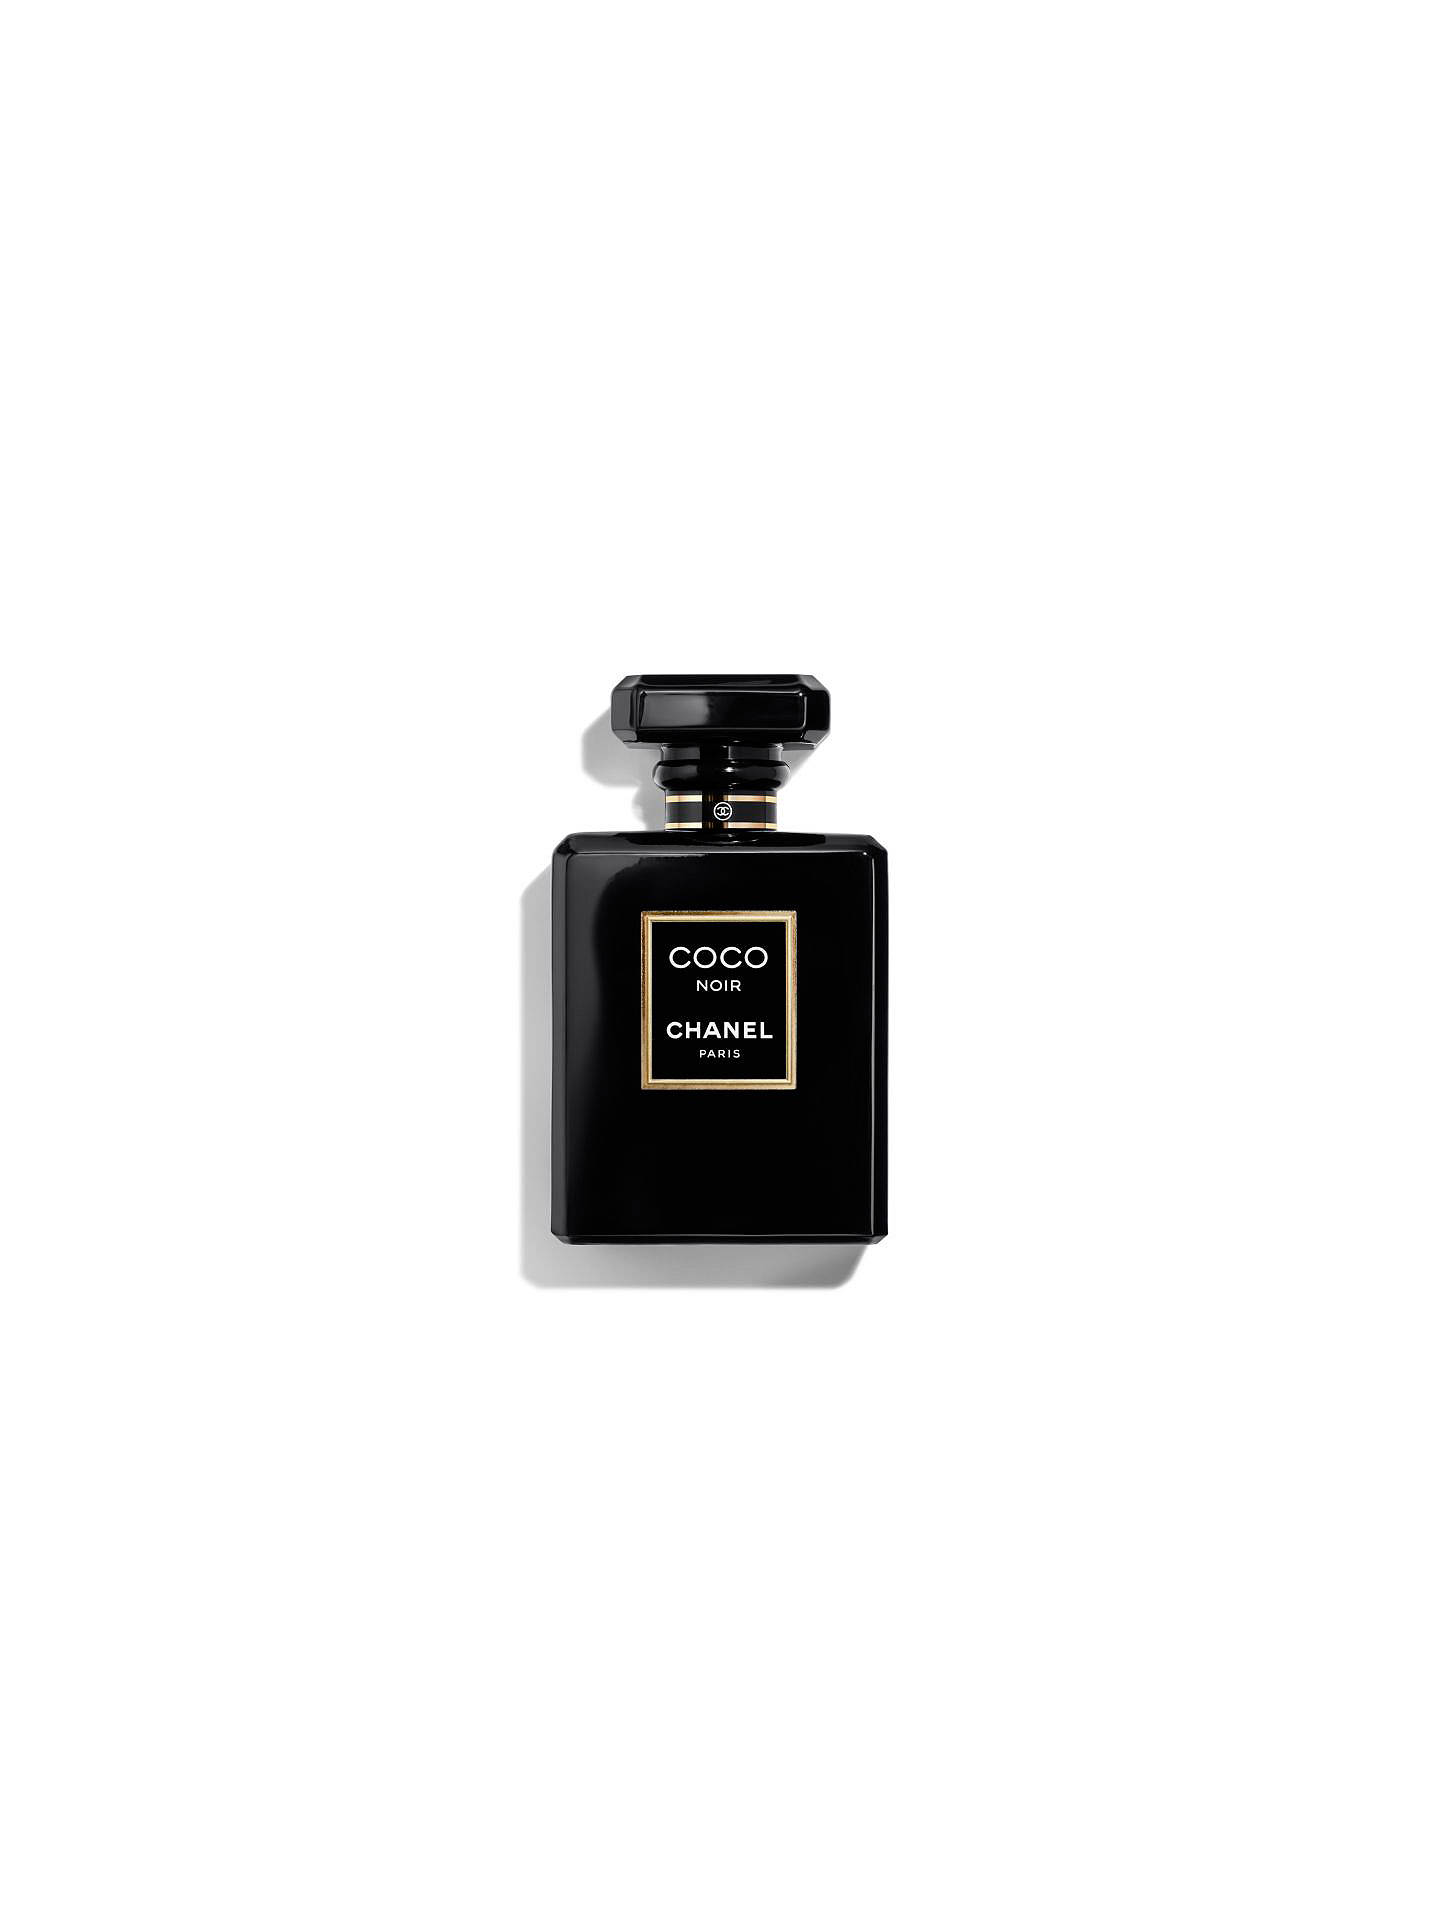 BuyCHANEL COCO NOIR Eau De Parfum Spray, 50ml Online at johnlewis.com